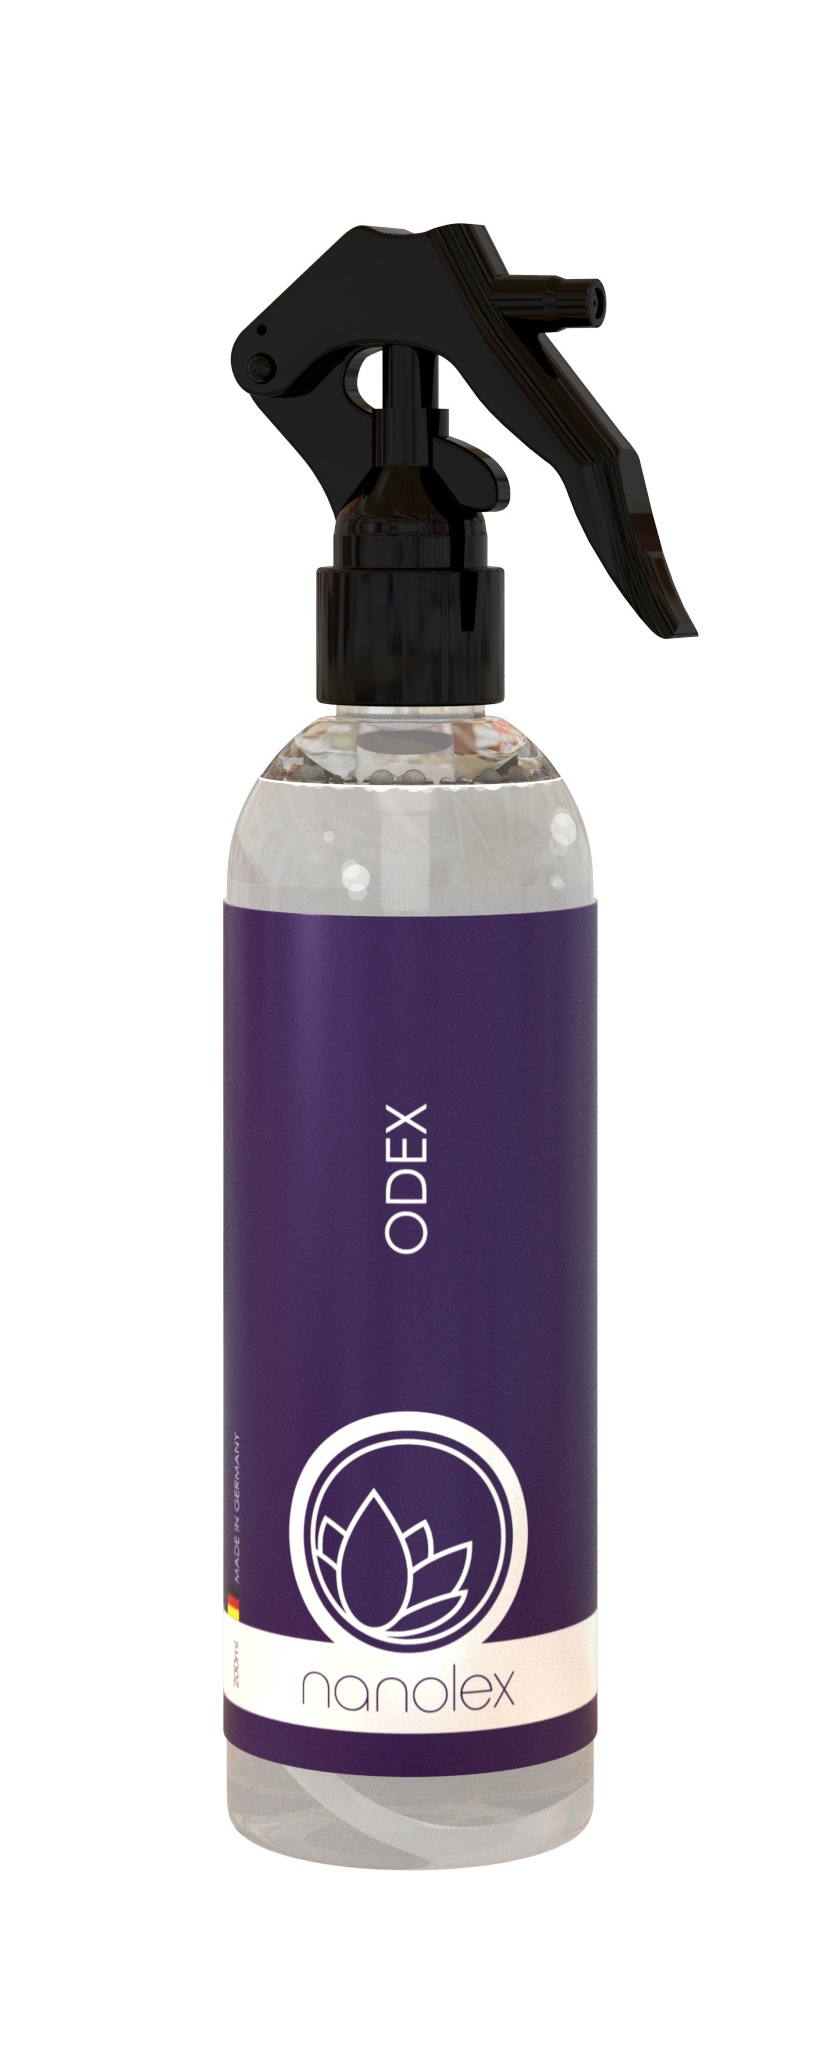 200ml Nanolex ODEX